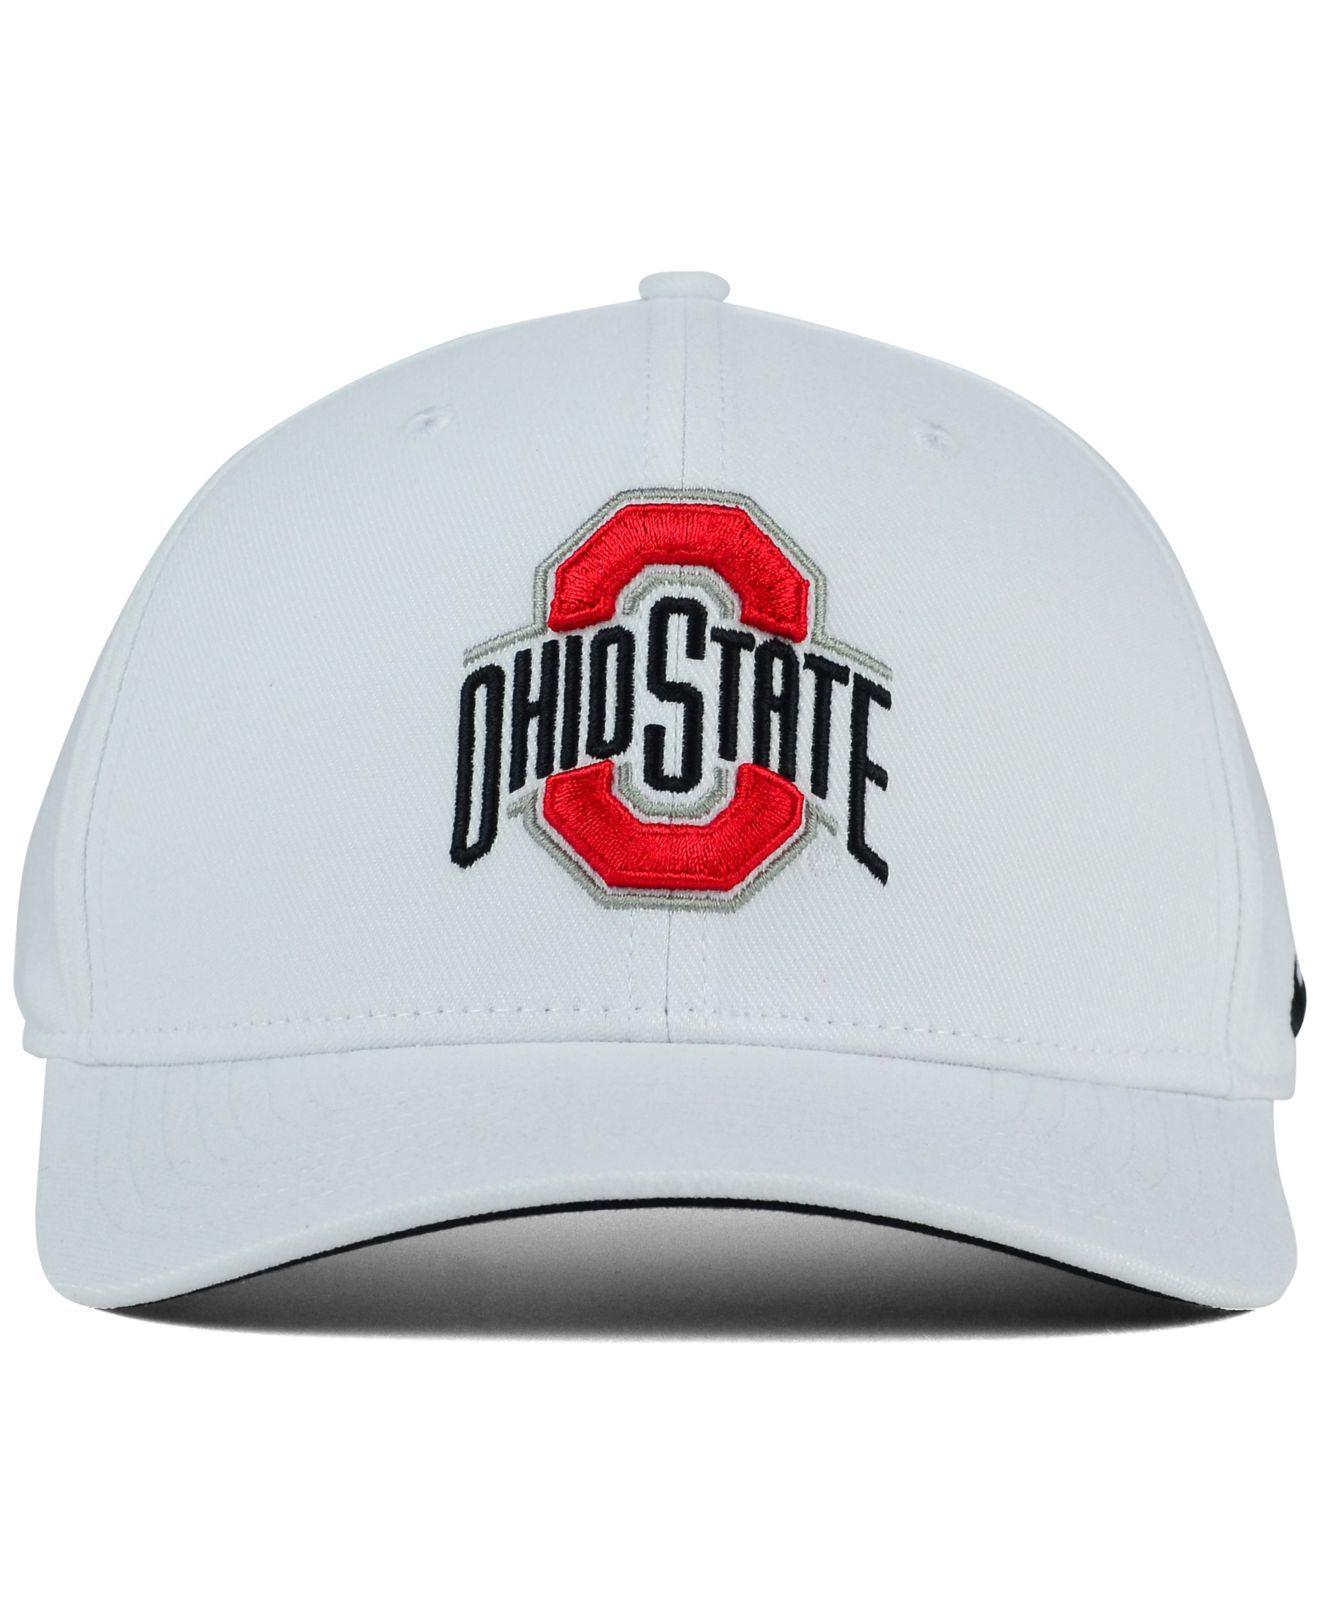 low priced f4b37 d5908 Lyst - Nike Ohio State Buckeyes Classic Swoosh Cap in White for Men